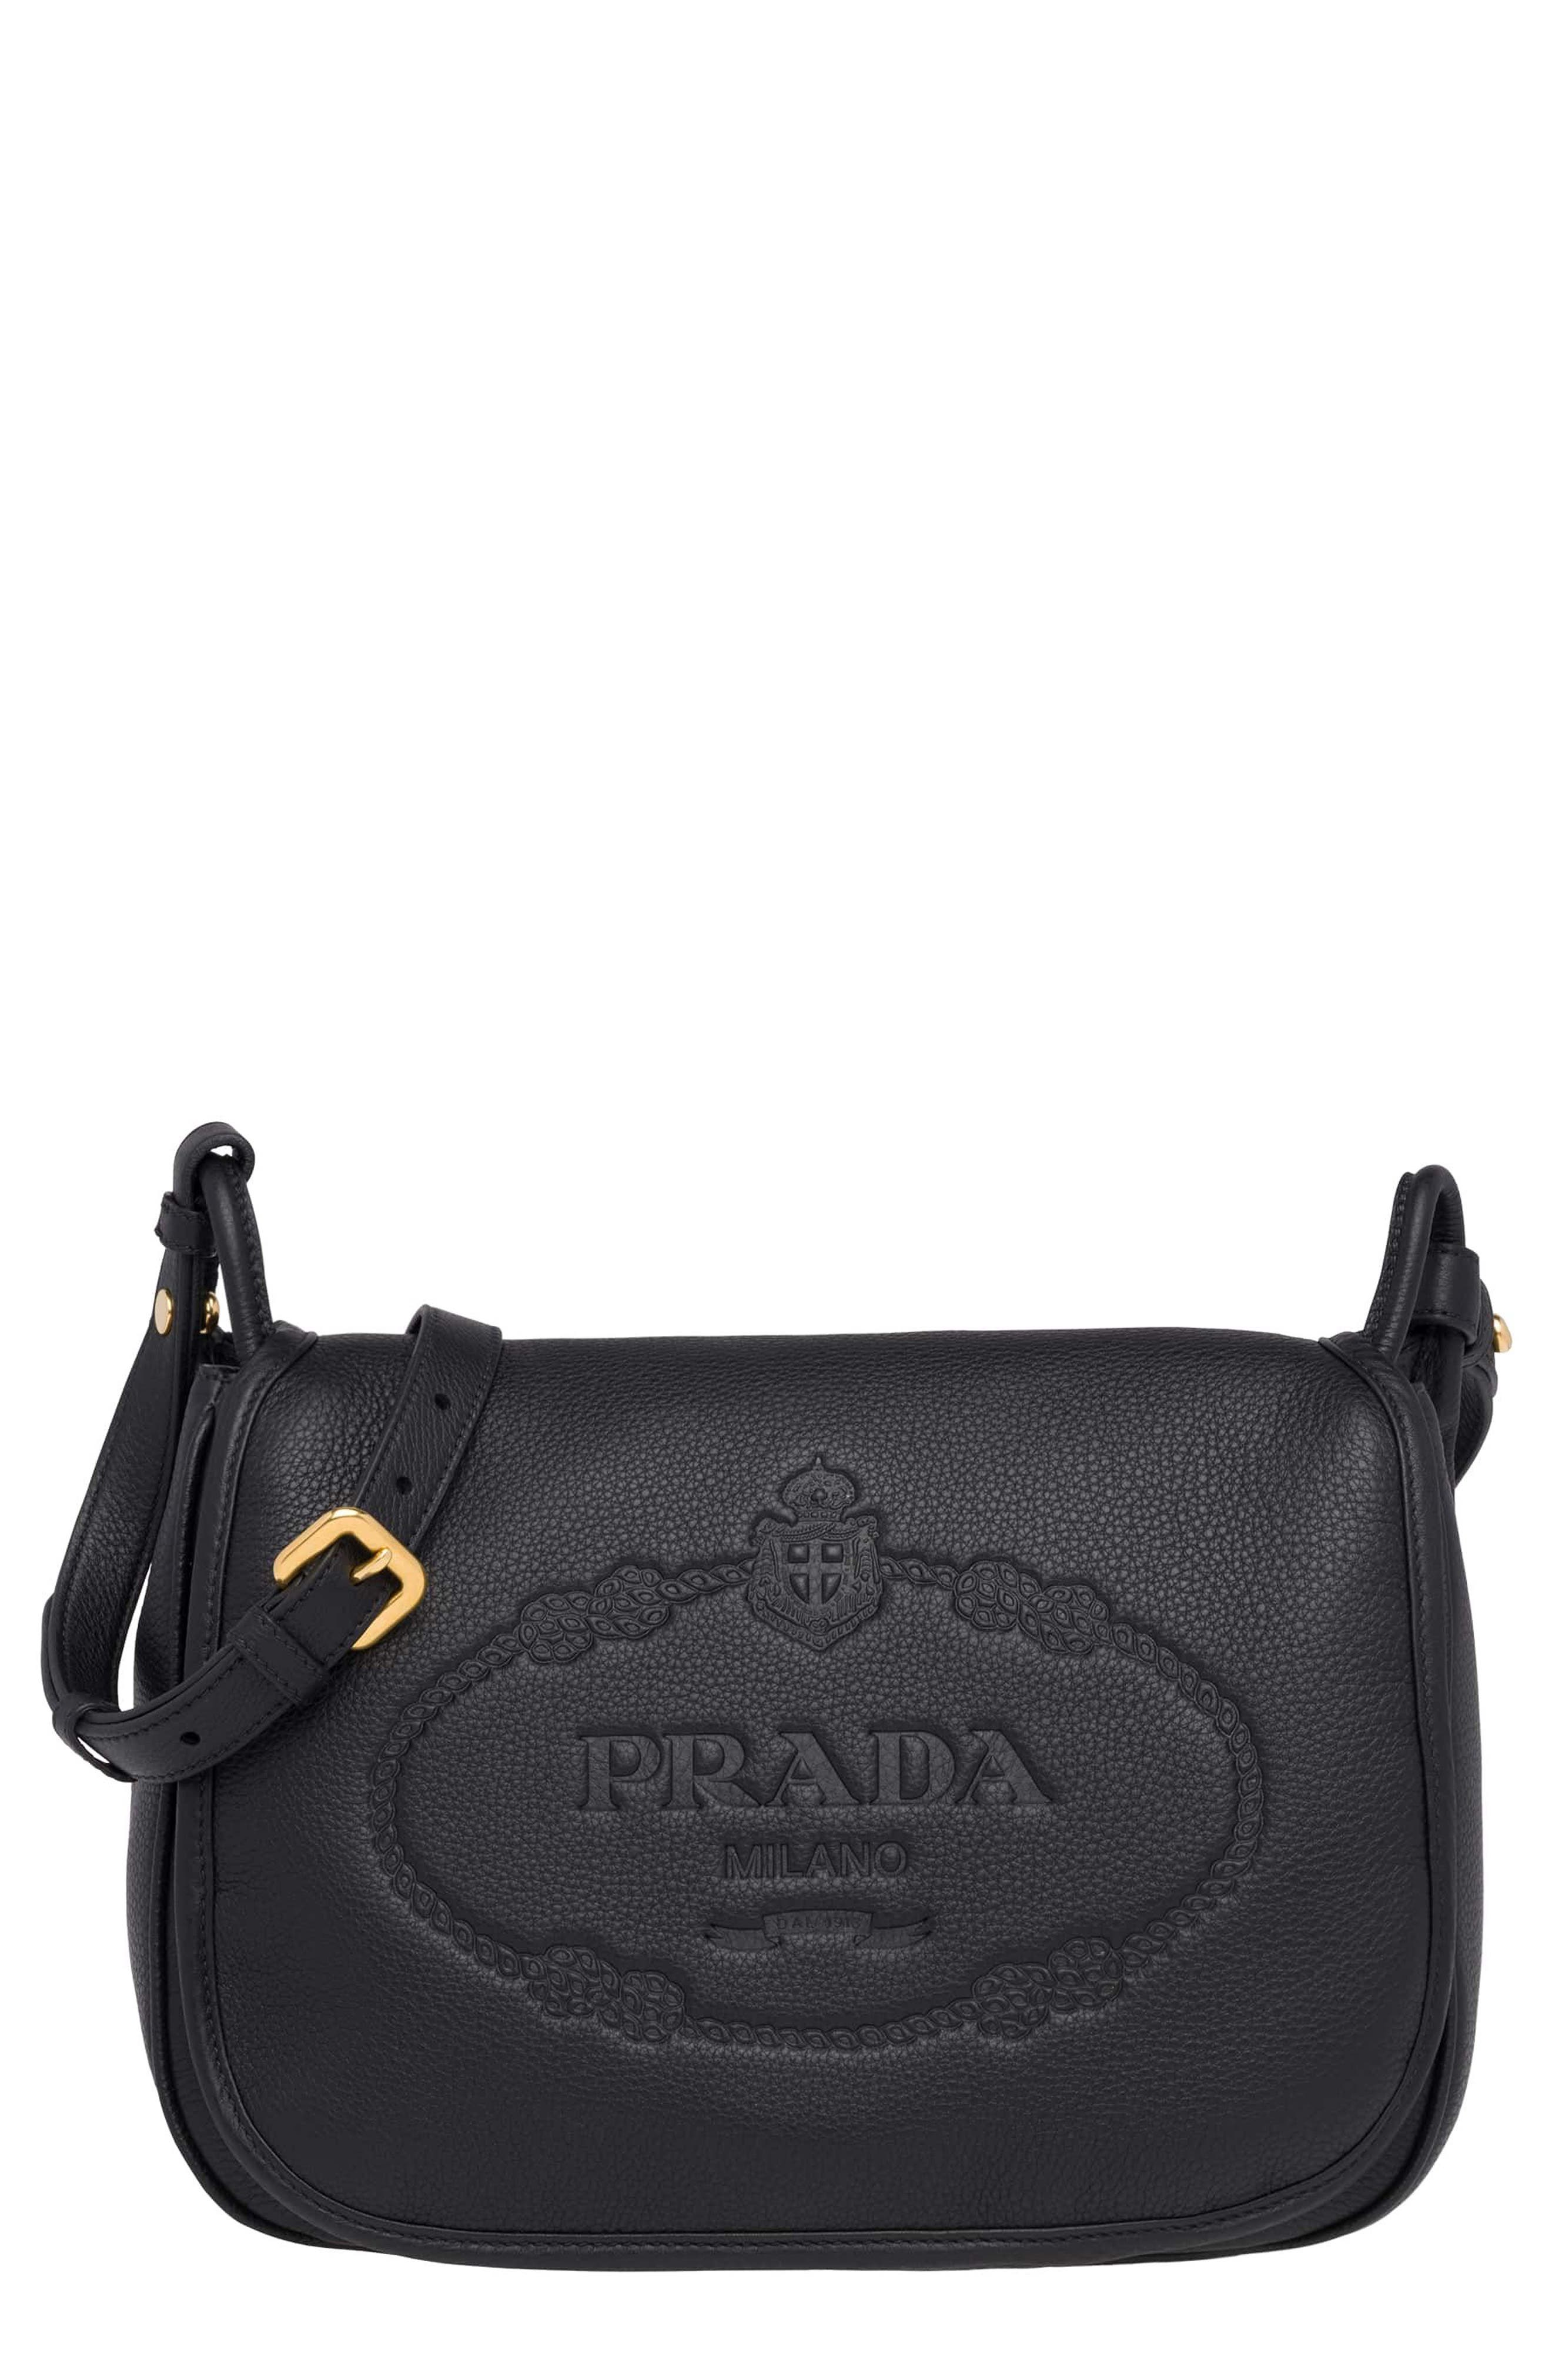 Prada Vitello Daino Heritage Logo Leather Crossbody Bag